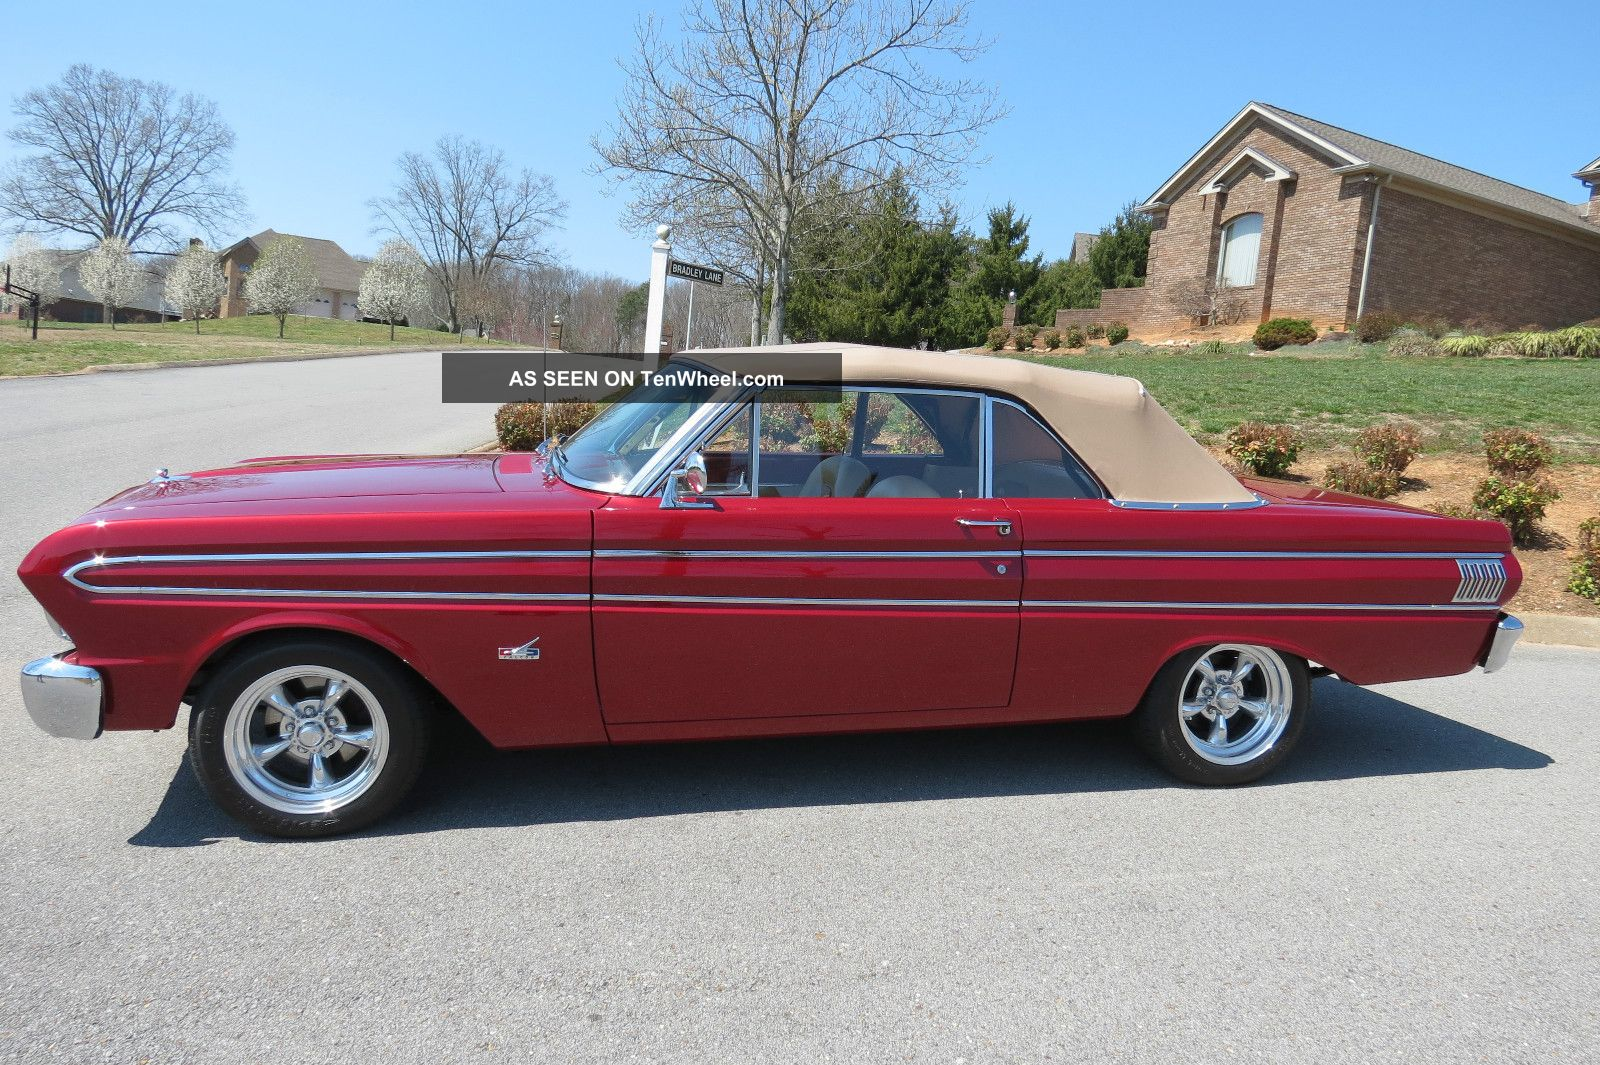 1964 Ford Falcon Convertible Photo 4